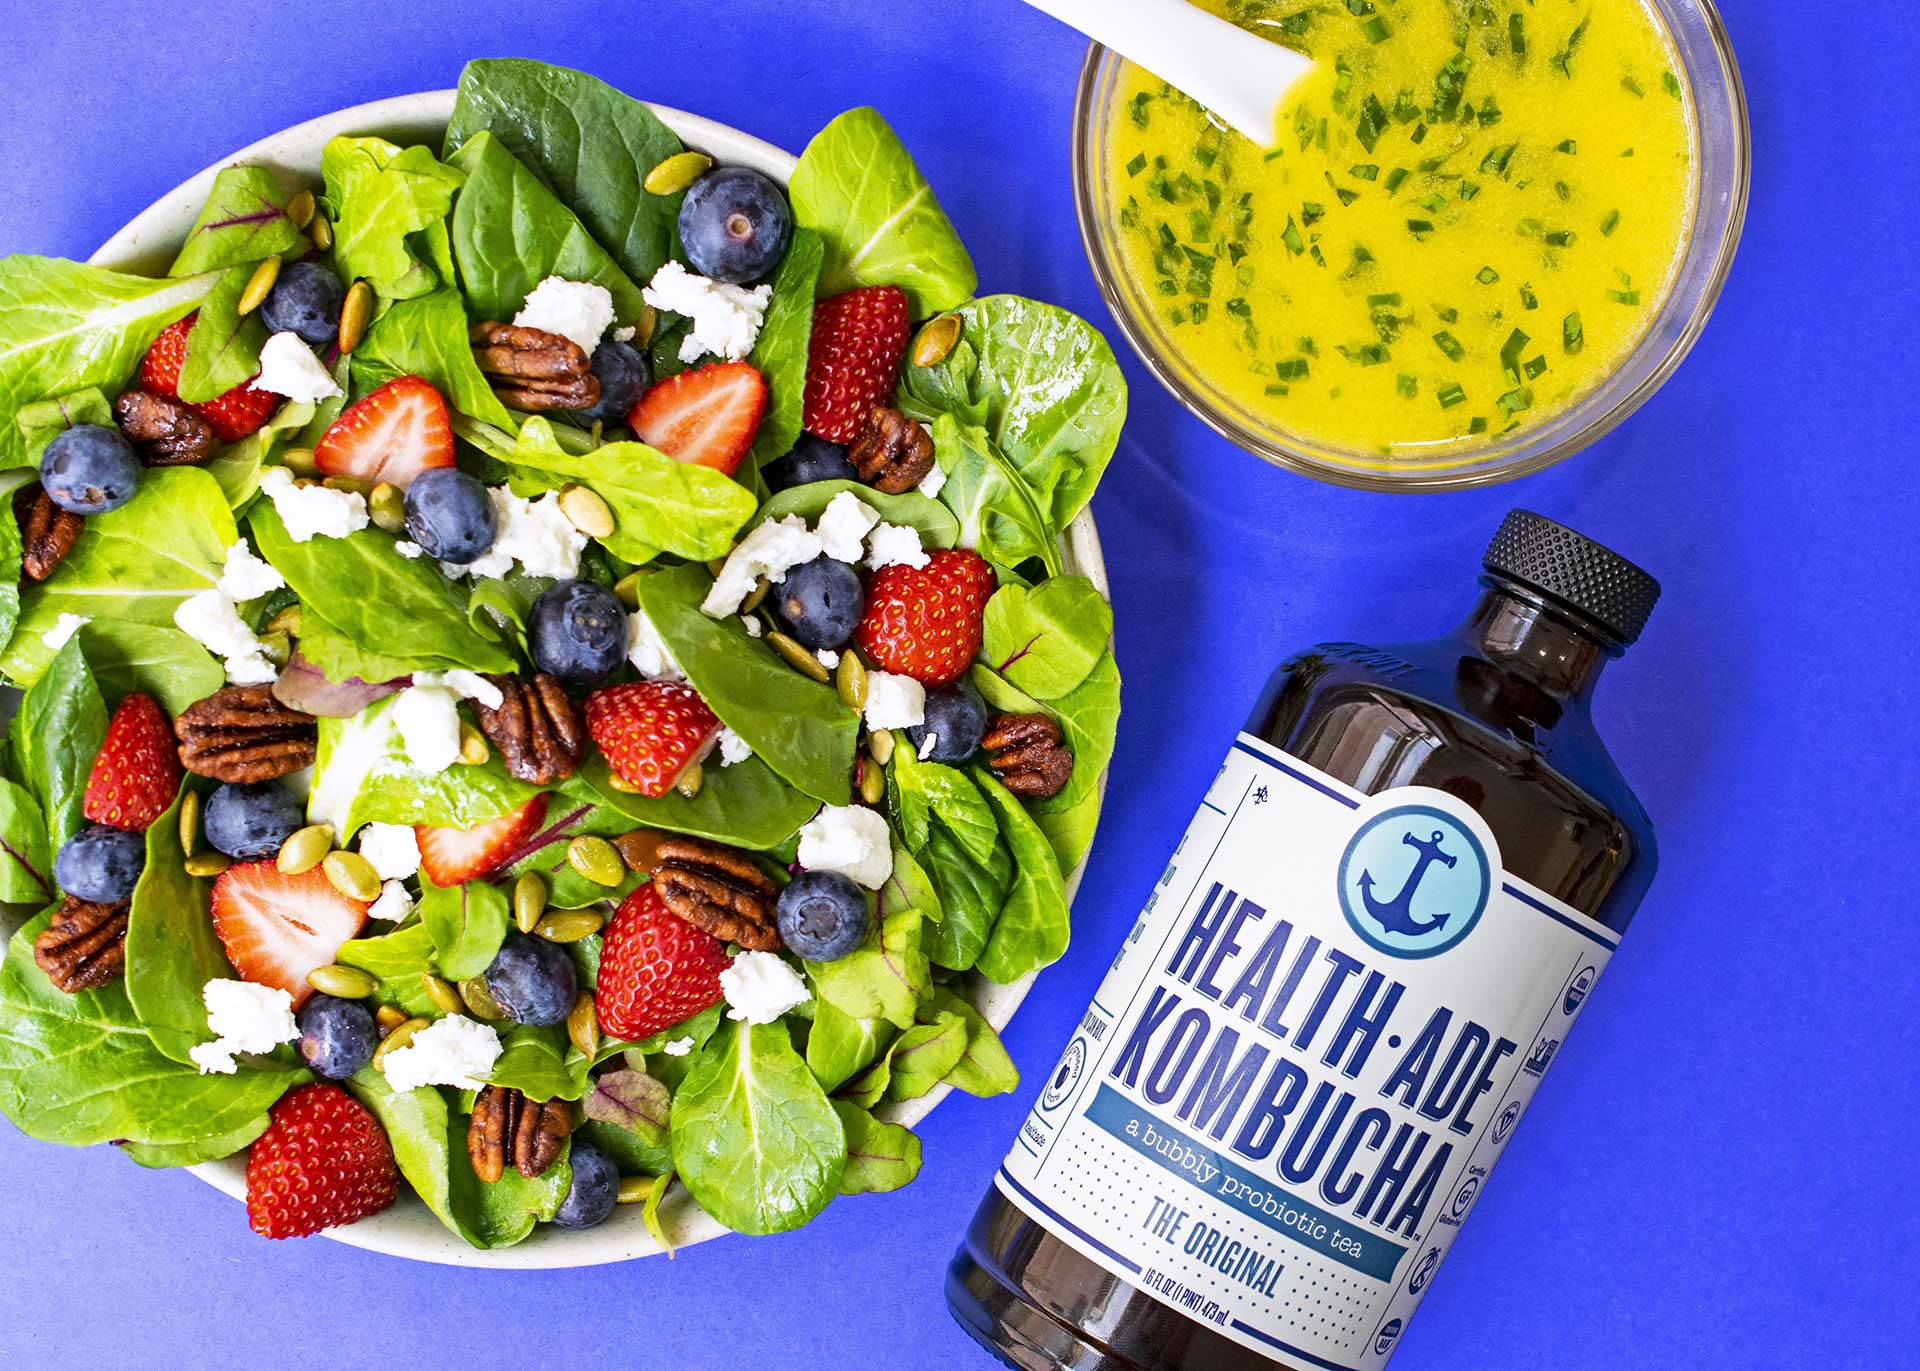 Make This Vinaigrette to Dress Up Your Spring Salads